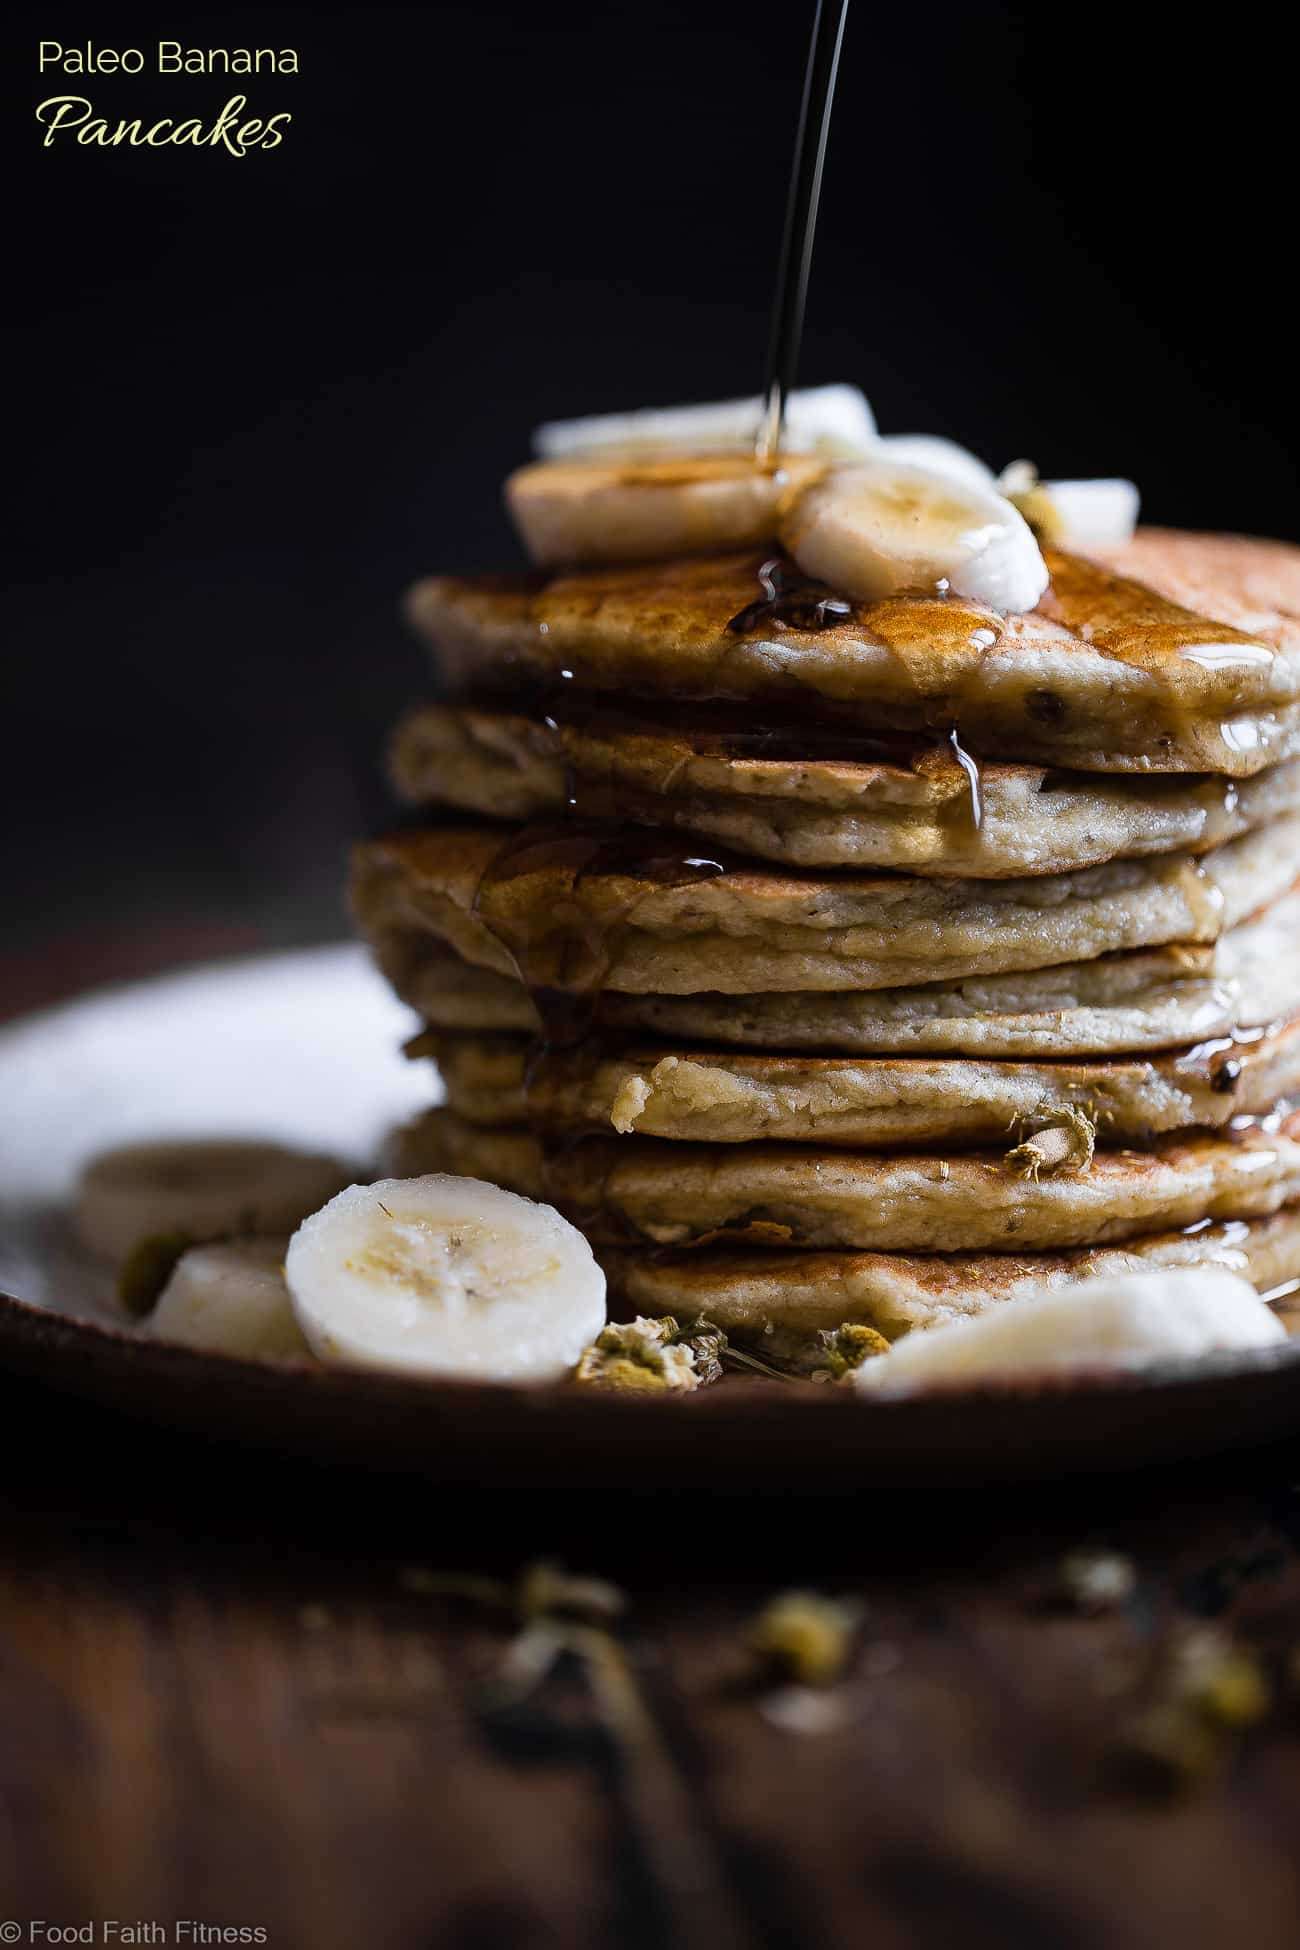 Easy Paleo Banana Pancakes with Coconut Flour -Thesequick and easy banana pancakesare naturally sweetened, gluten, grain and dairy free and SO light and fluffy! The perfect healthy start to your day or weekend breakfast! | Foodfaithfitness.com | #Foodfaithfitness | #Paleo #Glutenfree #Pancakes #Grainfree